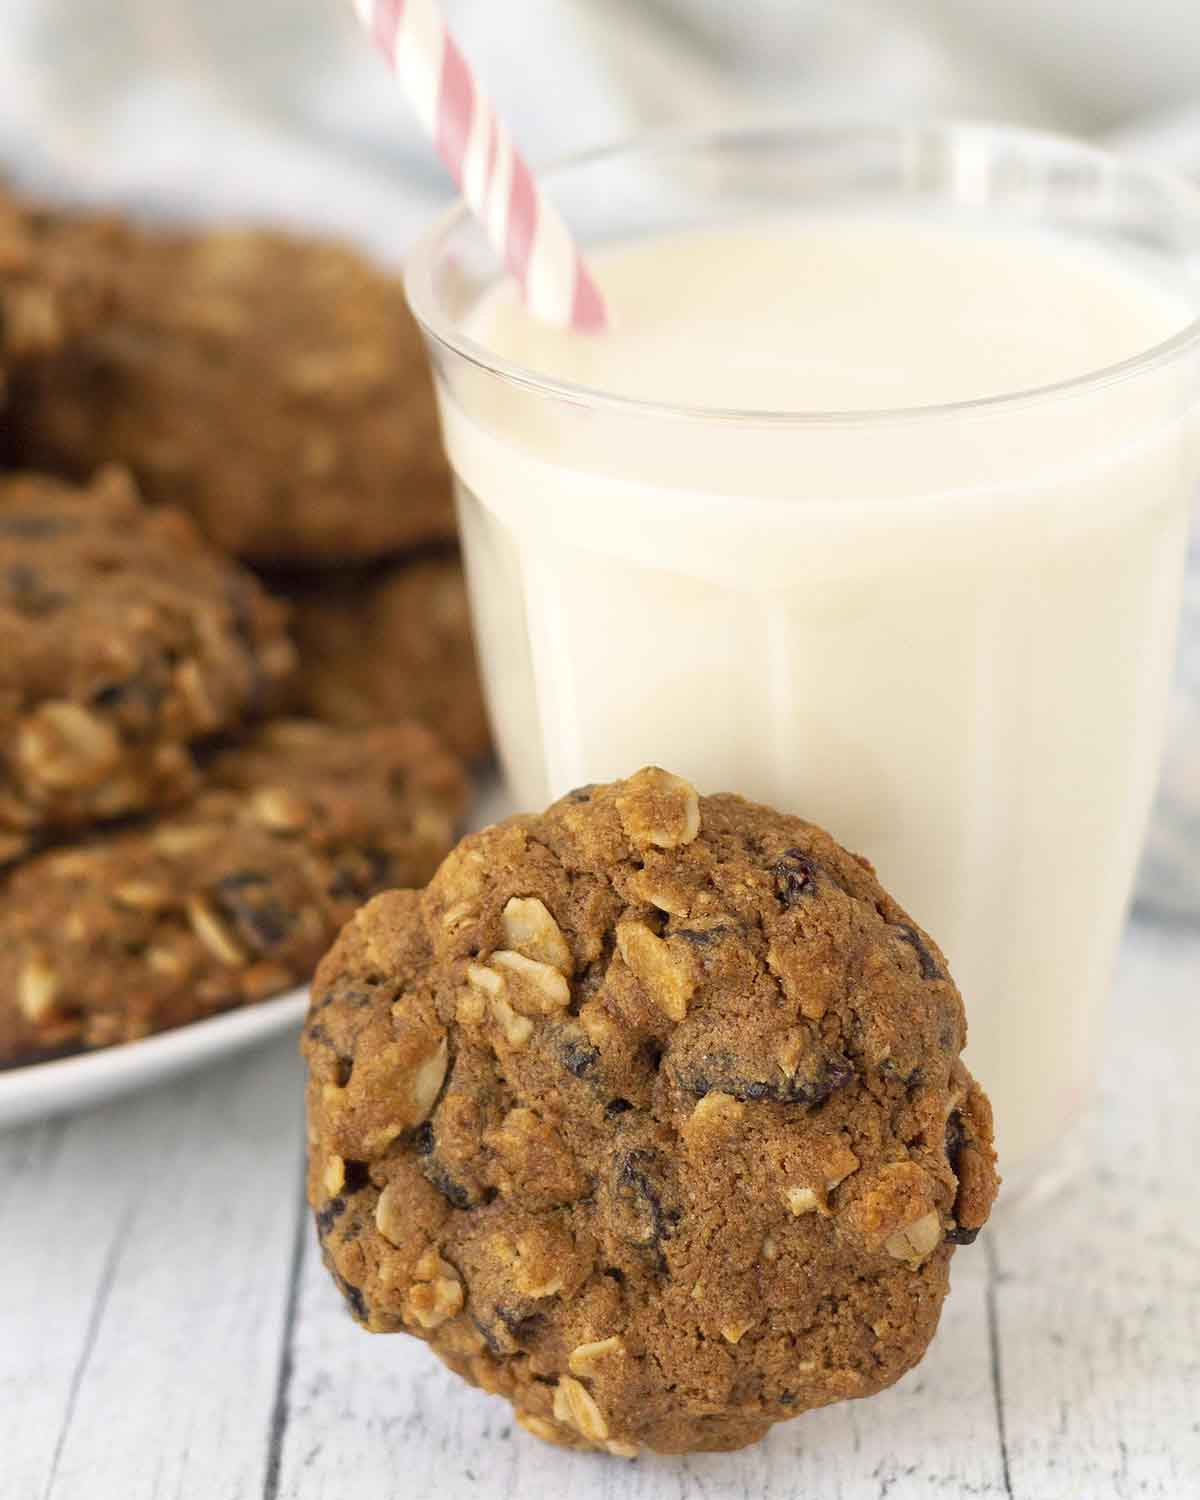 An oatmeal cookie leaning against a glass of almond milk, the glass has a pink straw in it.